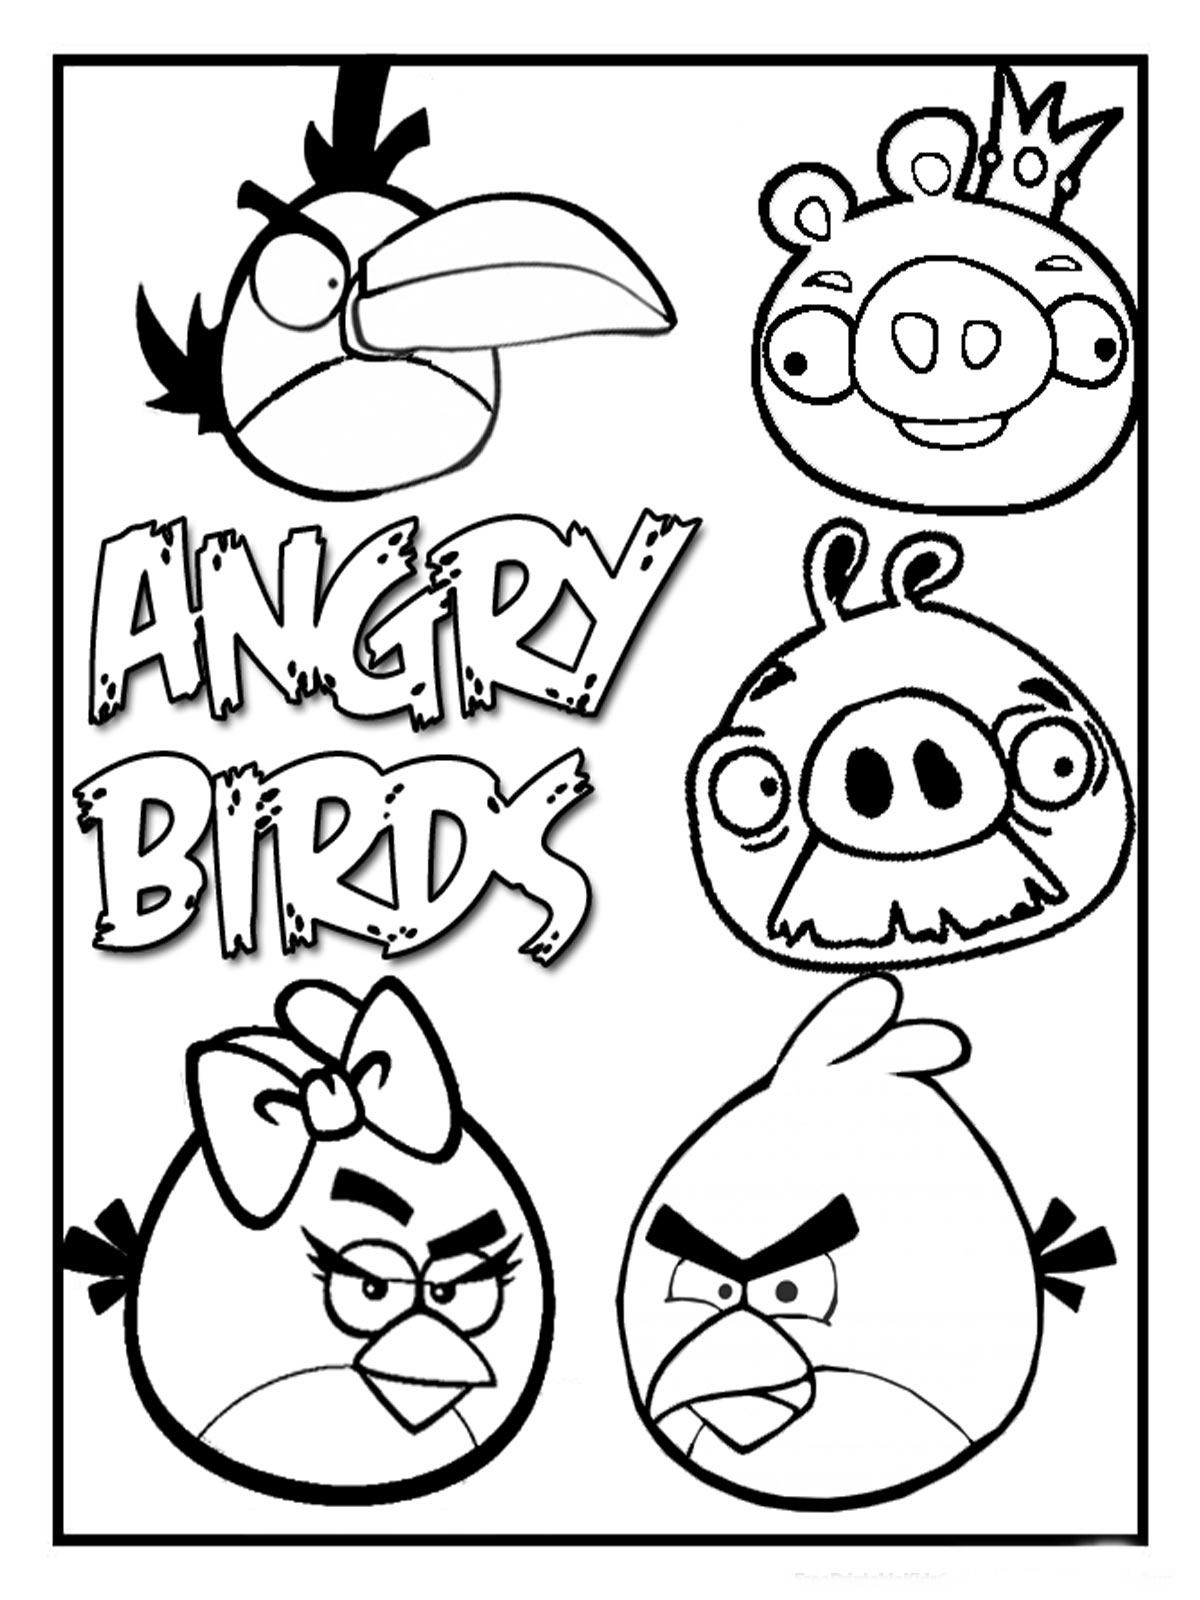 Angry Bird Color Sheet